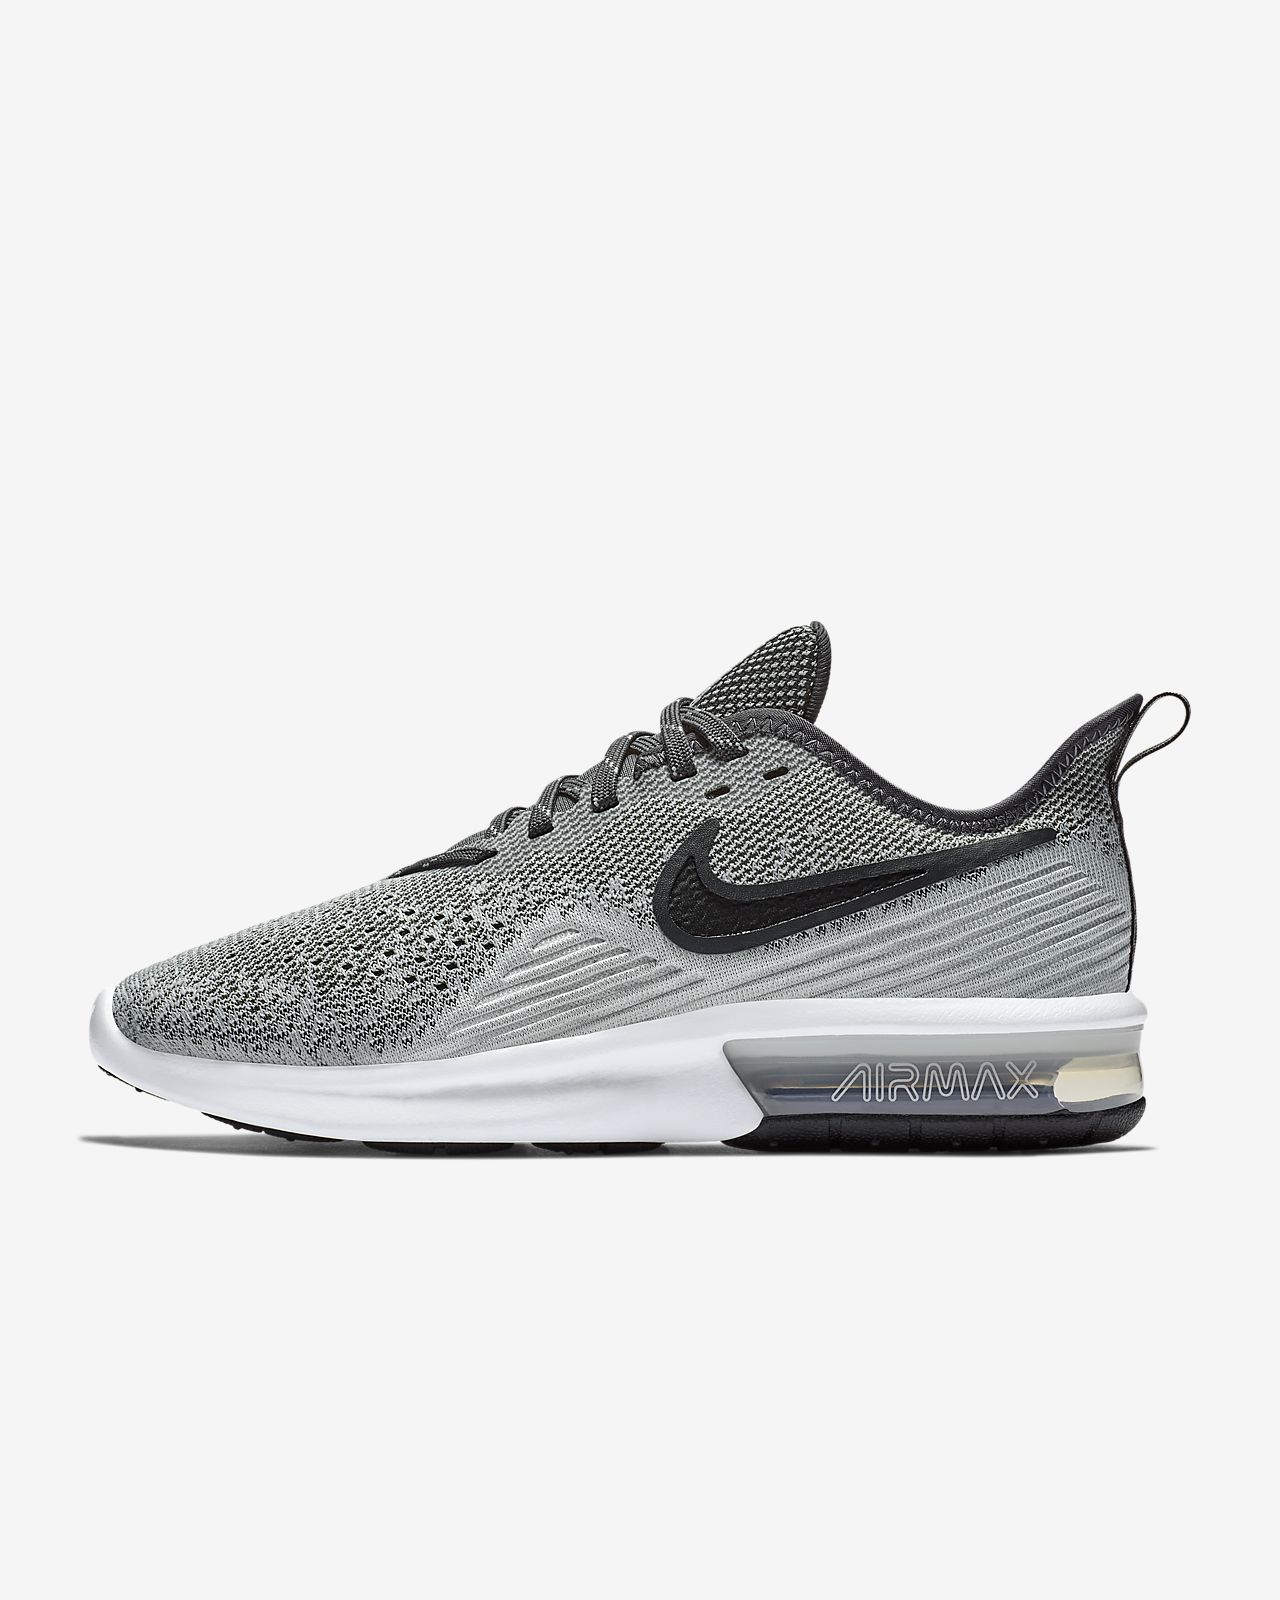 5bb2a36a147aa Nike Air Max Sequent 4 Women s Shoe. Nike.com AU